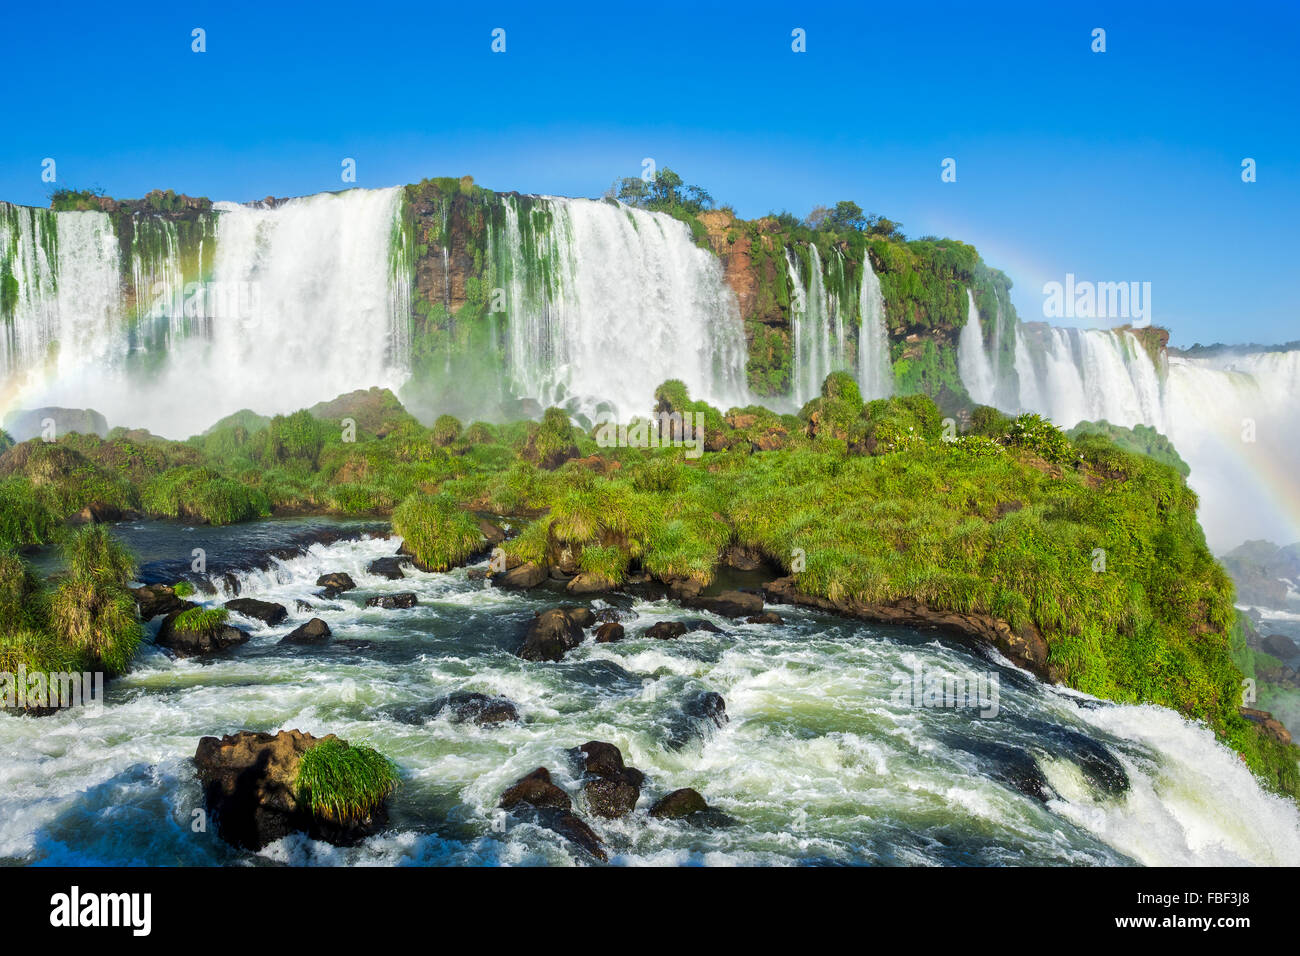 Iguazu Falls, on the border of Argentina, Brazil and Paraguay. - Stock Image